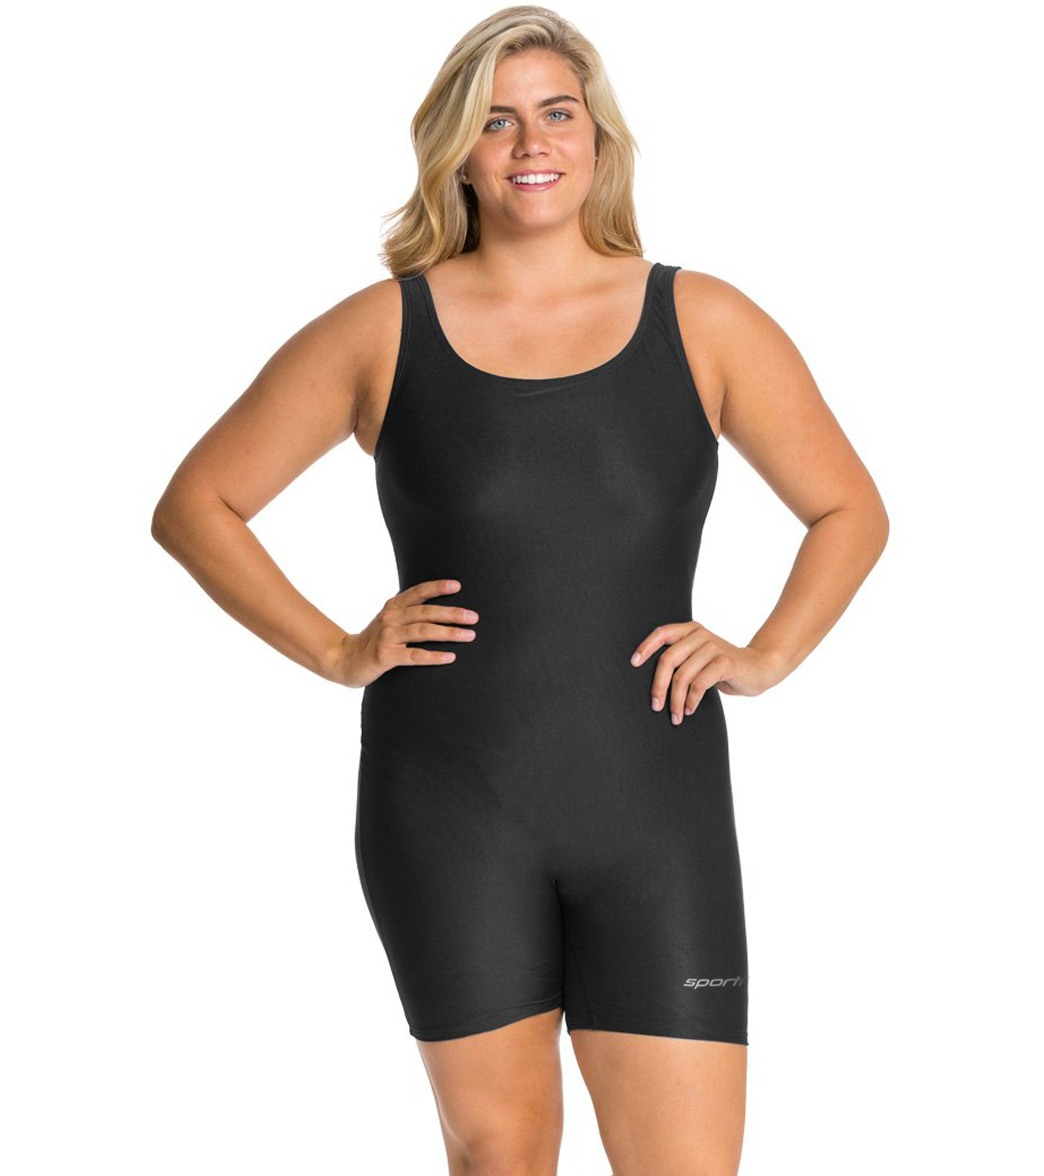 bd15295e6904 Sporti Plus Size Polyester Solid Fitness One Piece Unitard at  SwimOutlet.com - Free Shipping